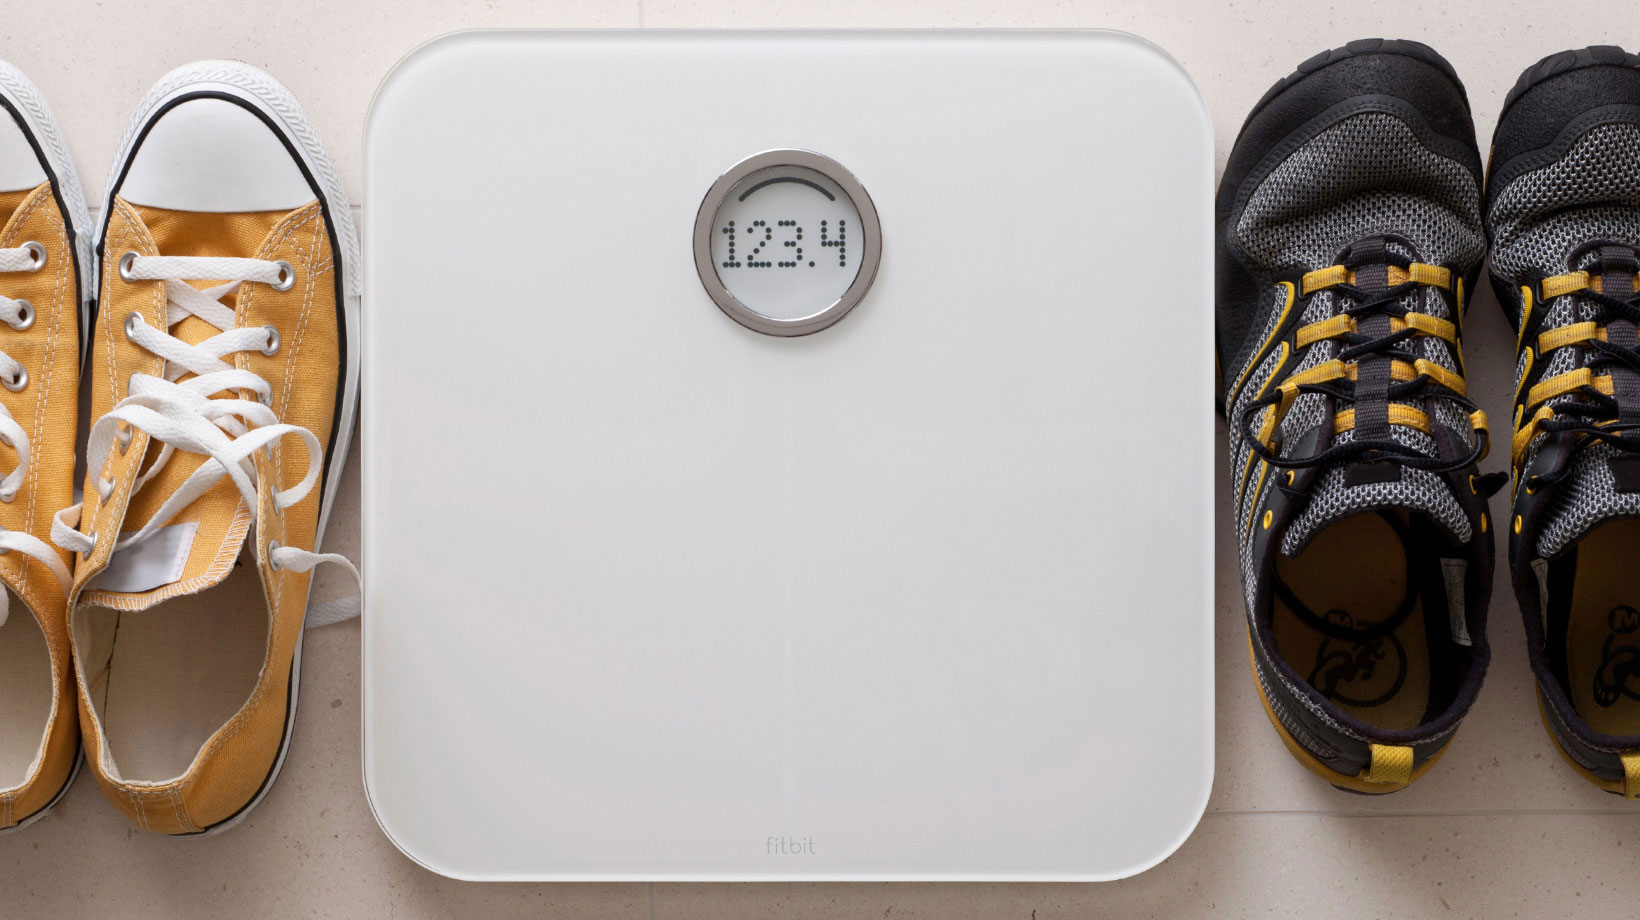 fitbit-aria-smart-scale-review